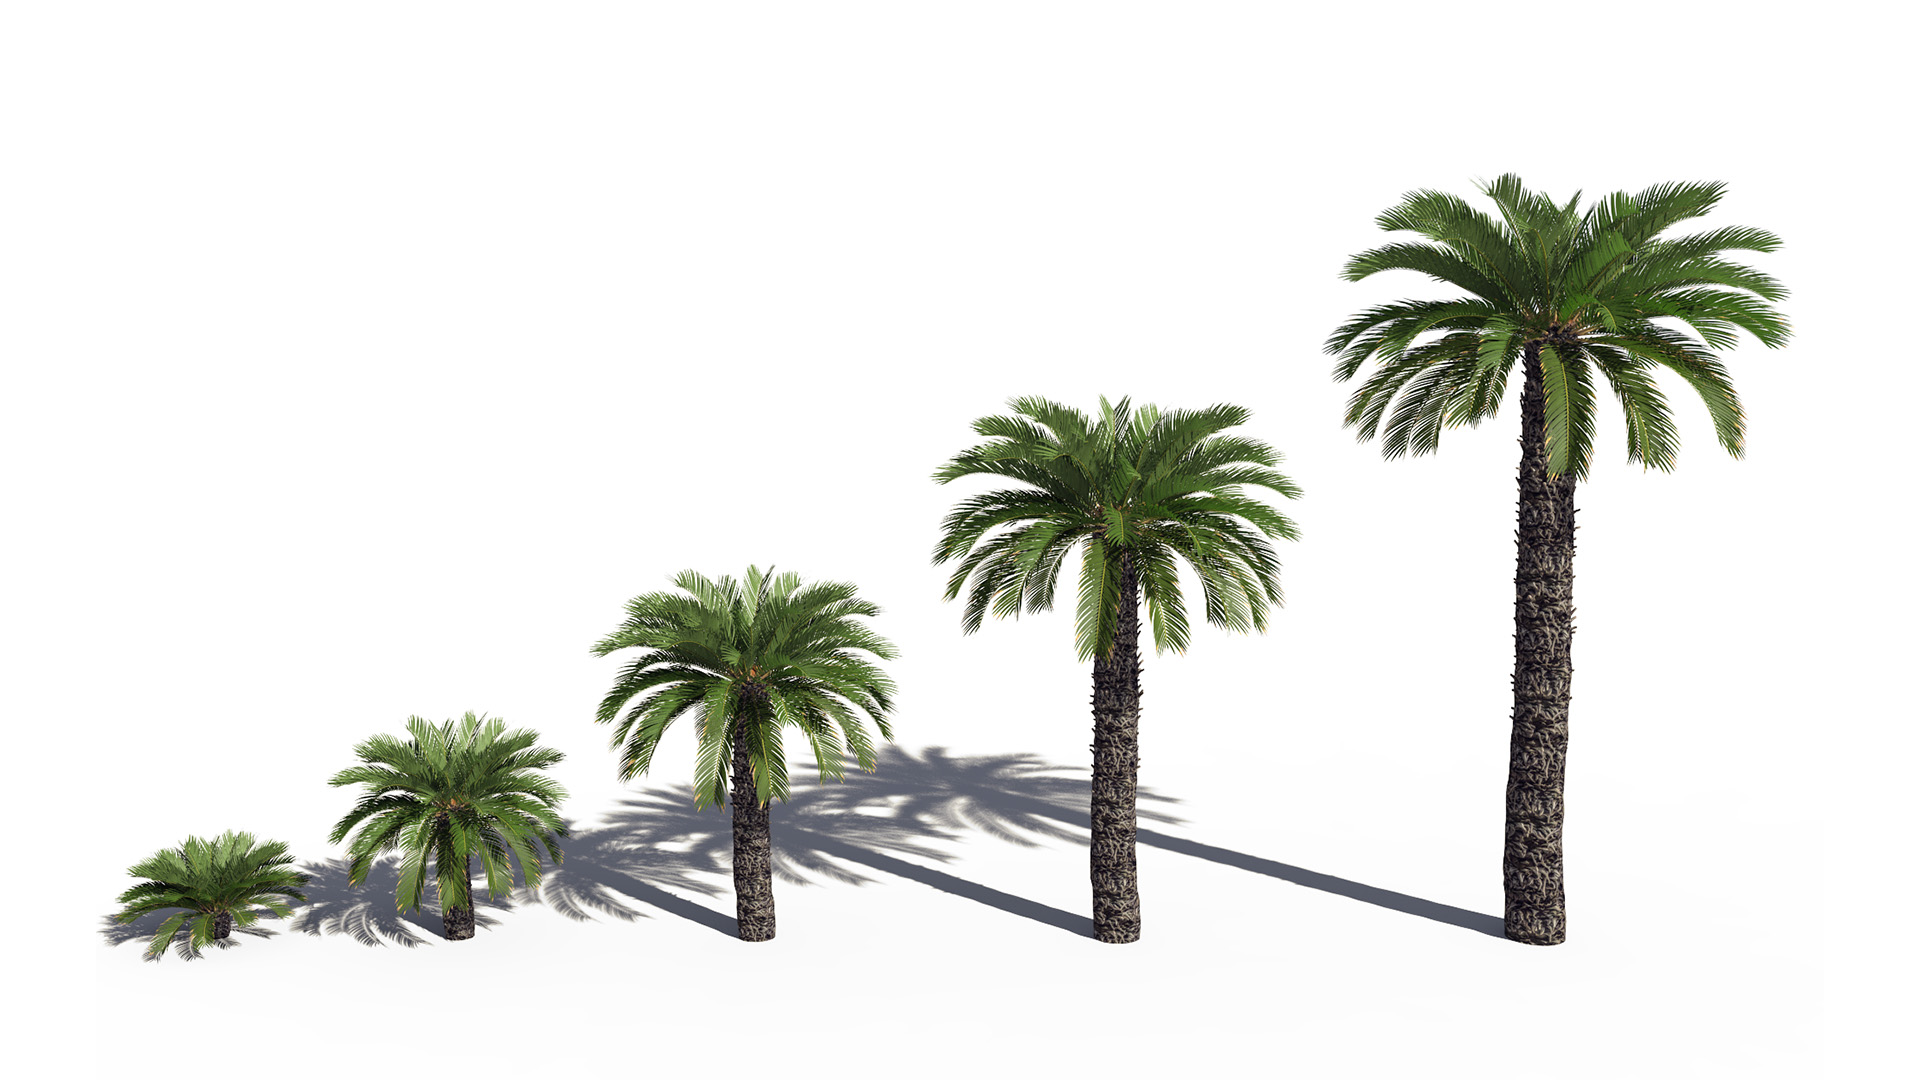 3D model of the Japanese sago palm Cycas revoluta